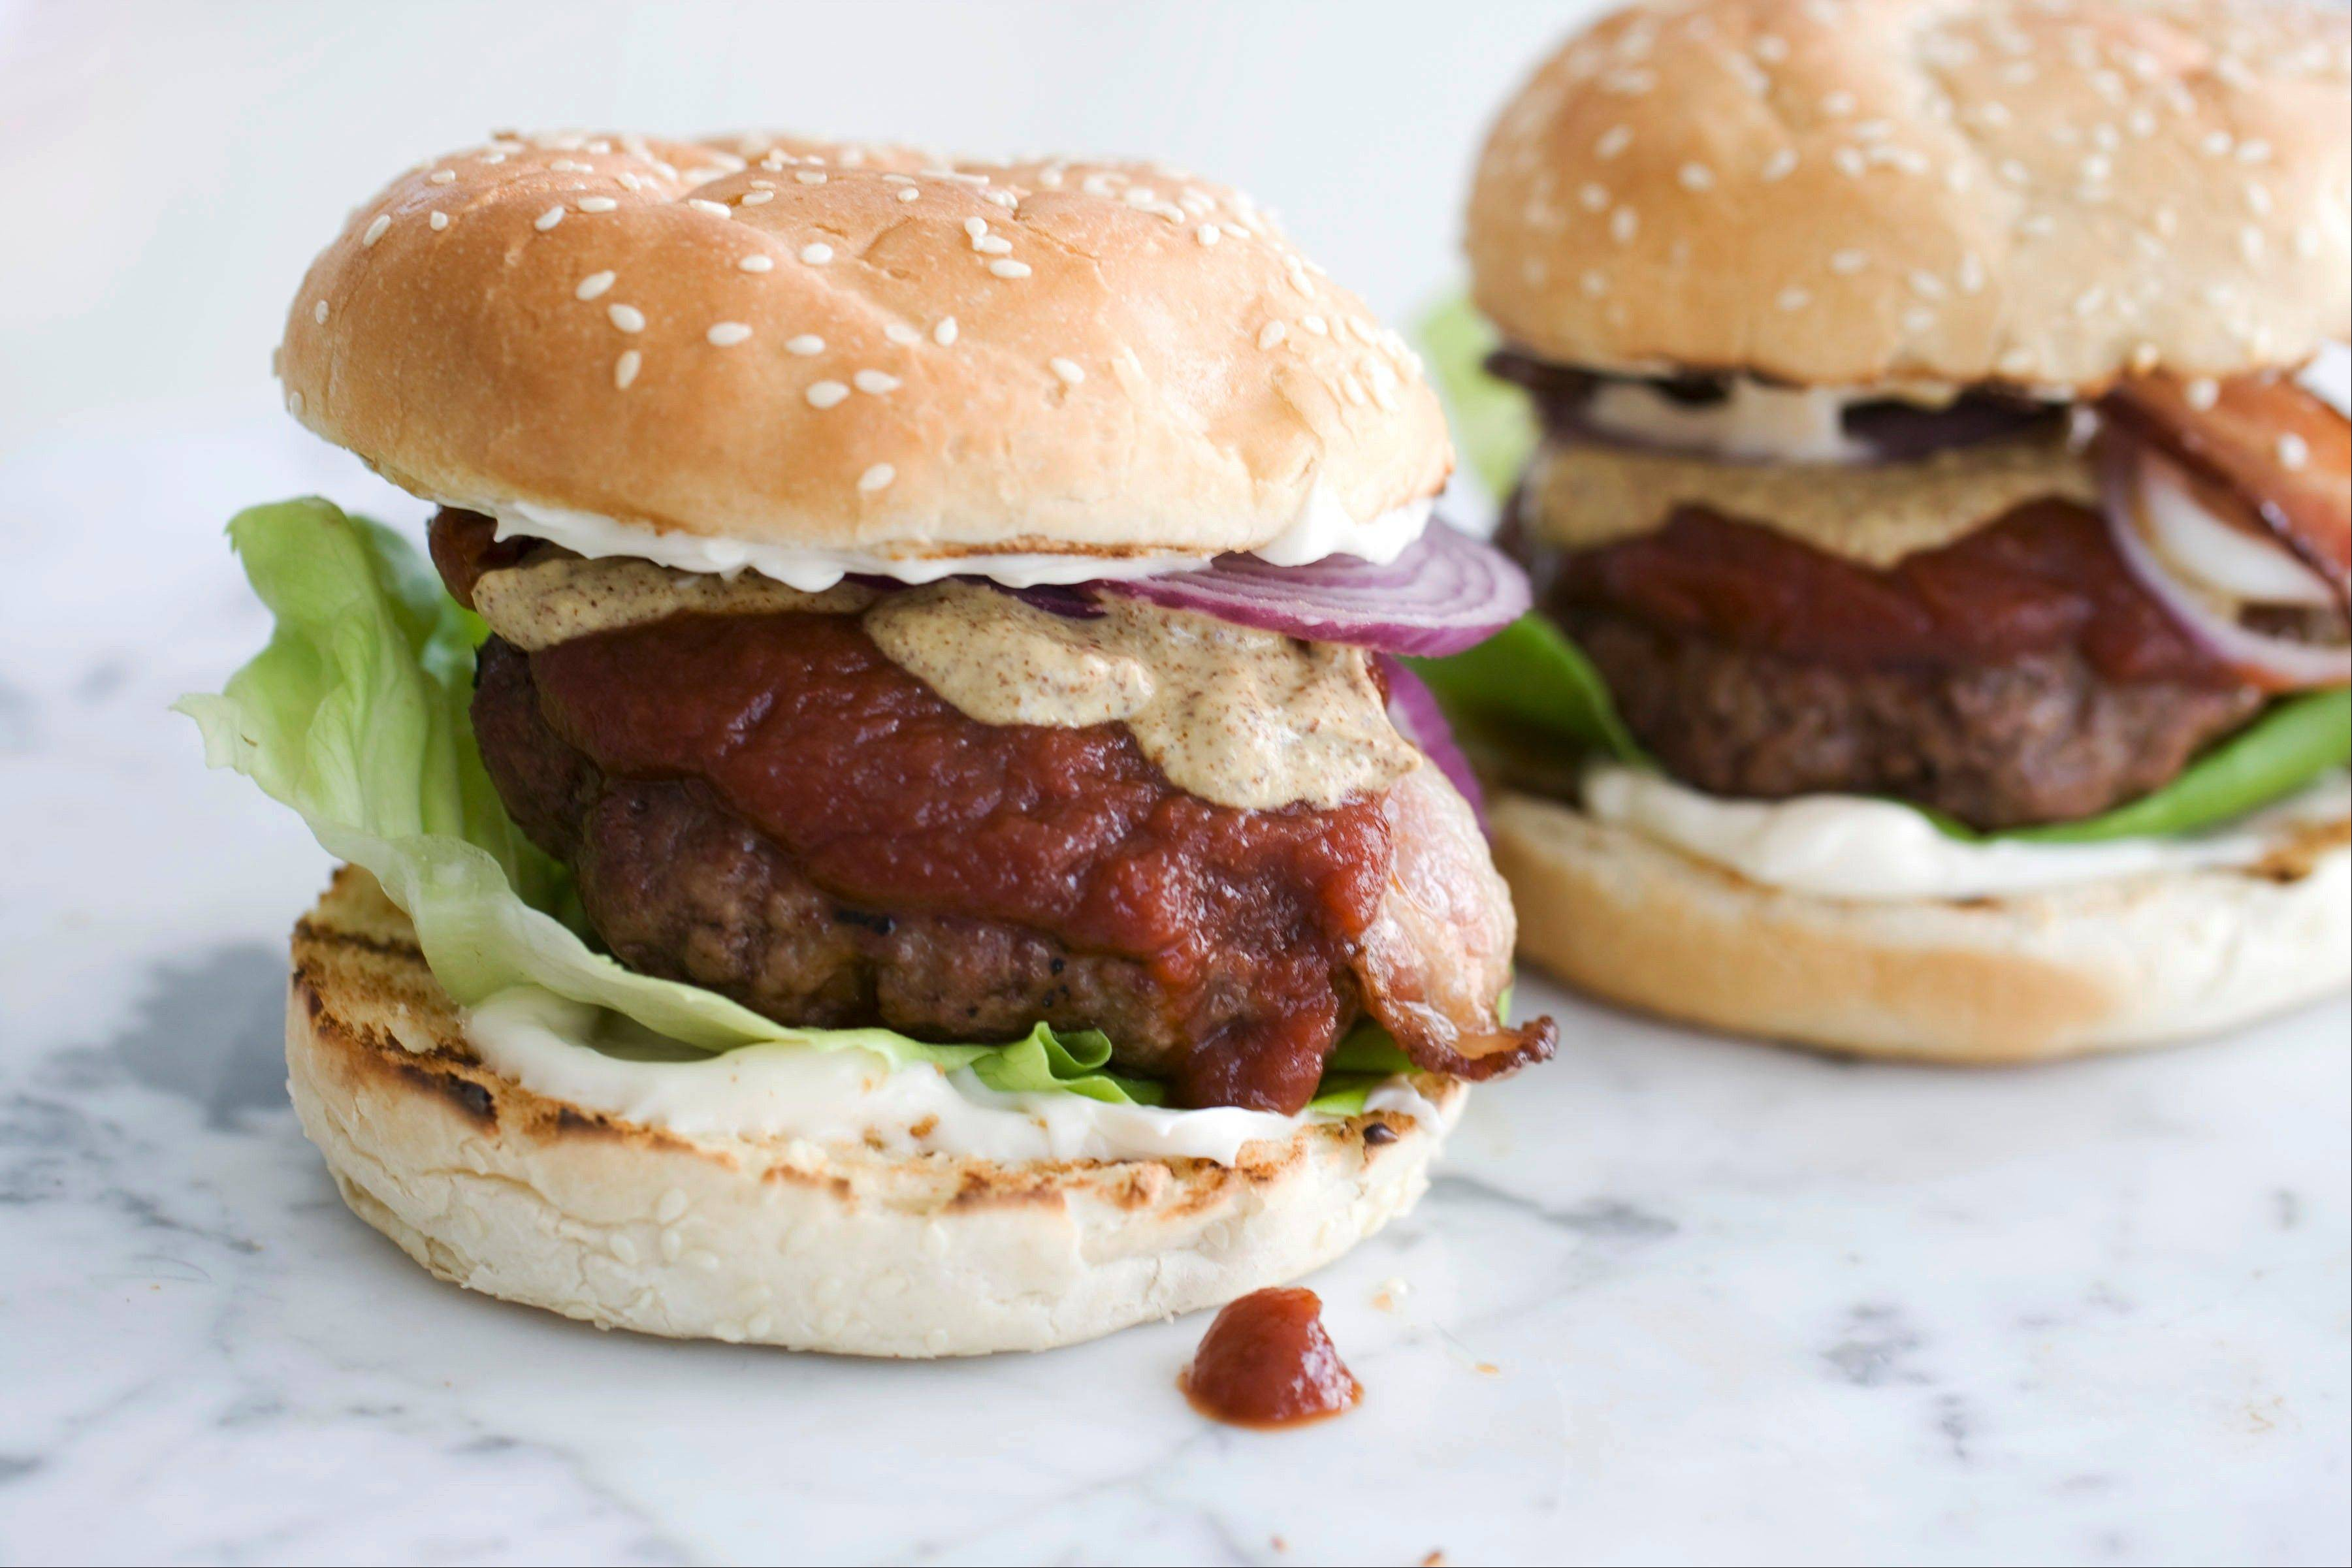 When it comes to creating a great burger, the less-is-more philosophy yields delicious results.